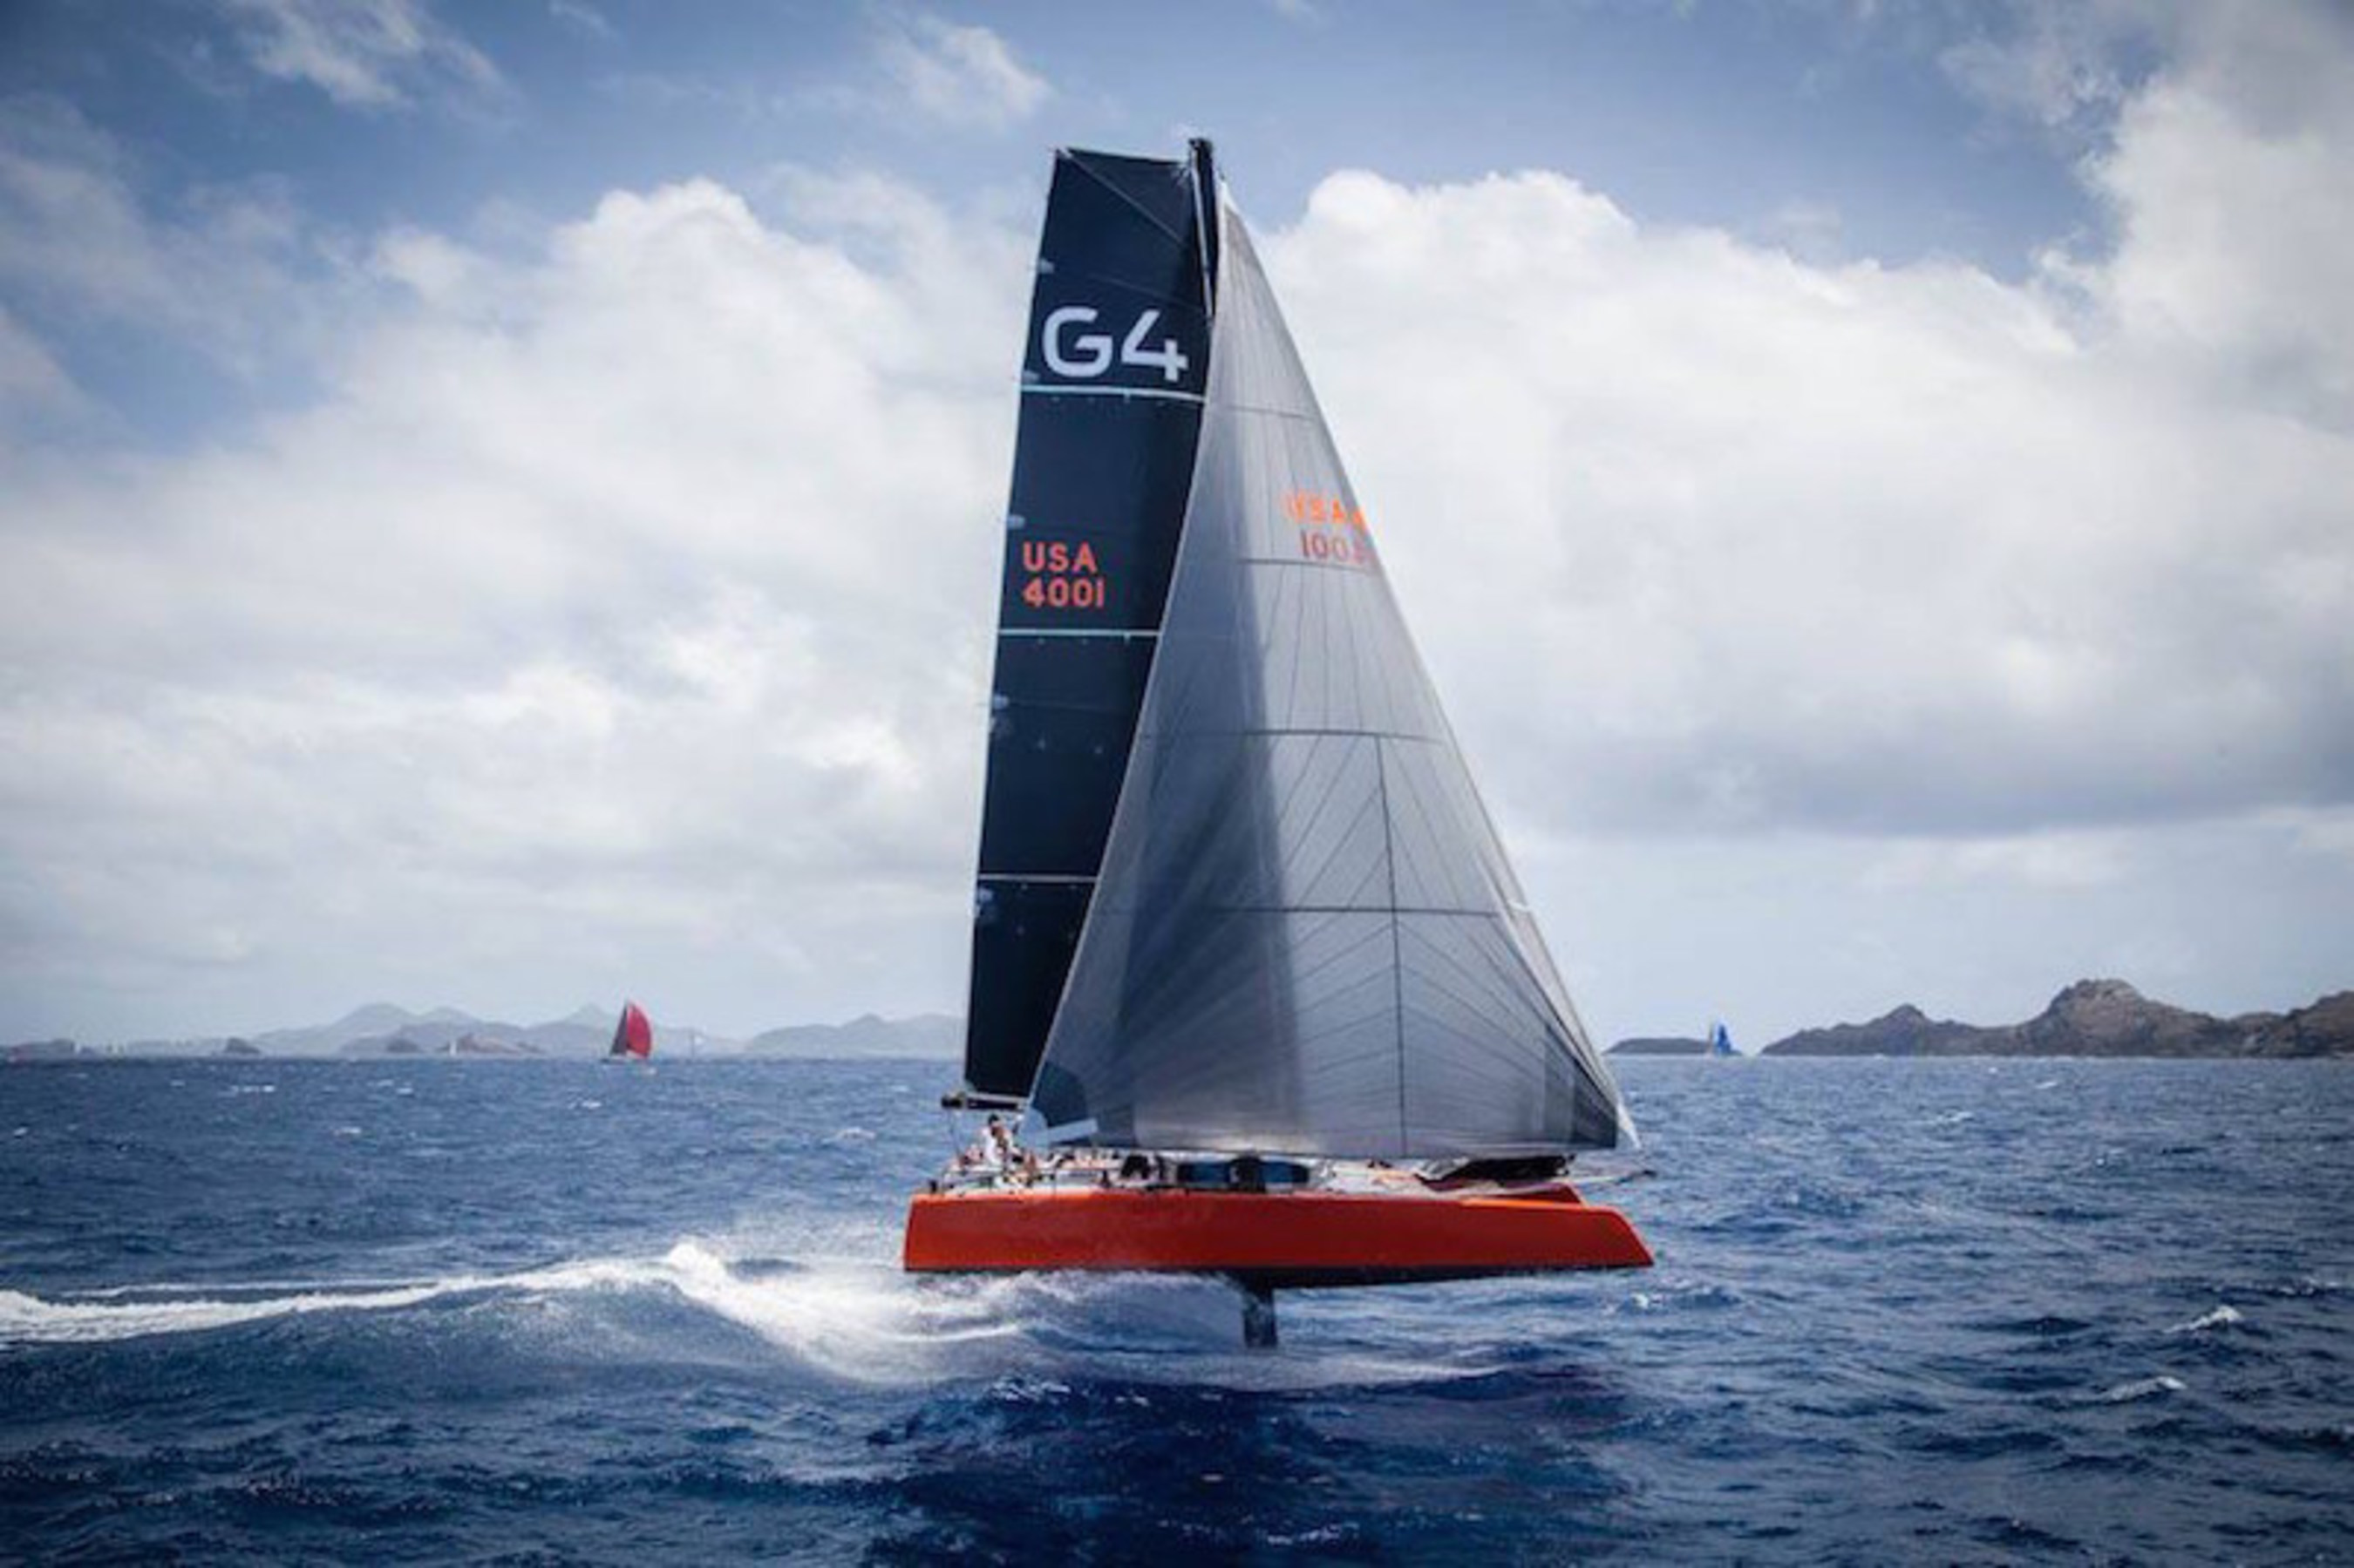 A First: Luxury 70-foot Catamaran with New Hydrofoil Technology